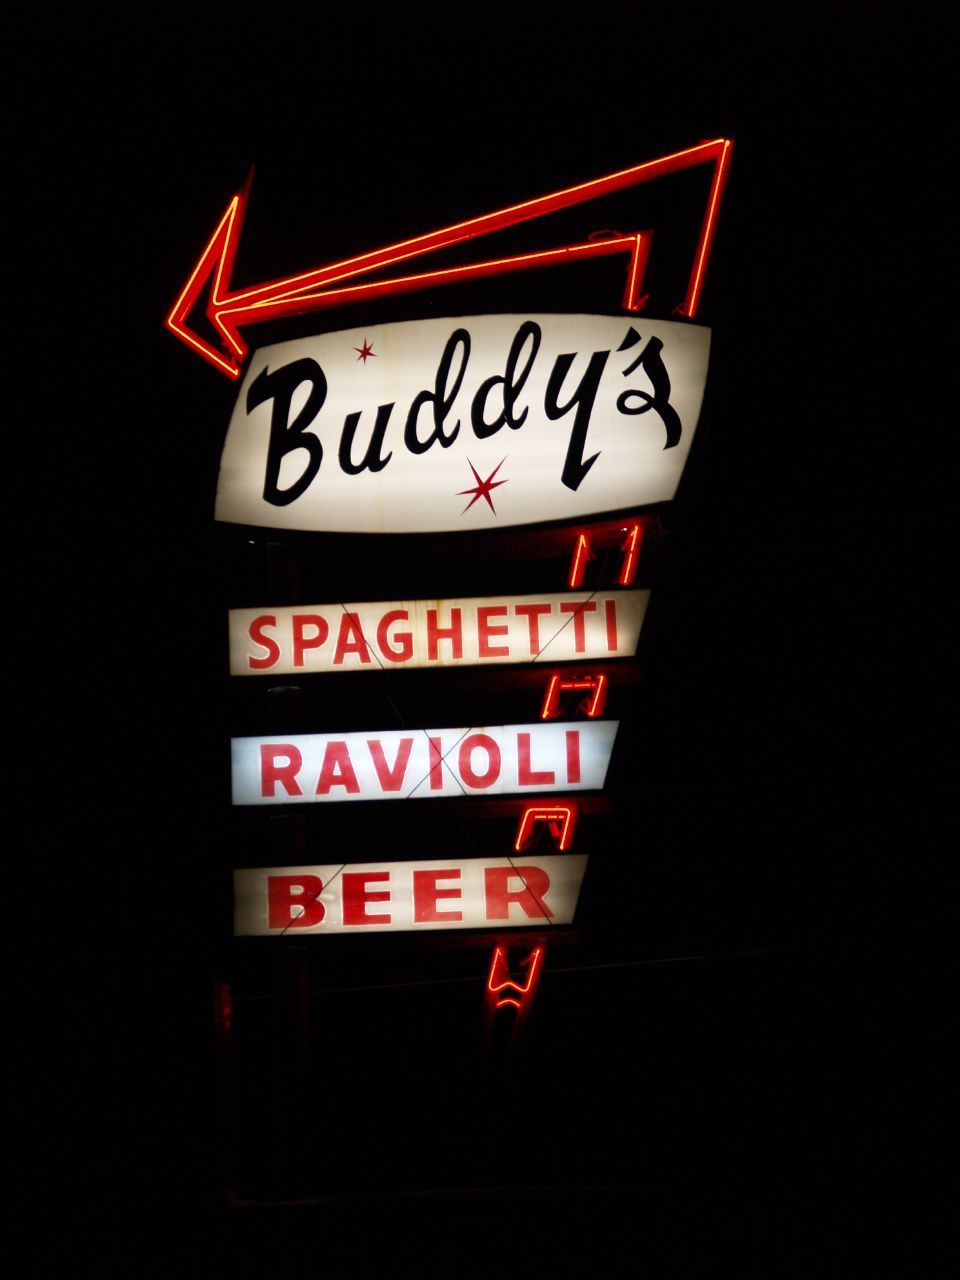 Whatever Happened To Really Cool Neon Signs Love That Retro Feel Side Note I Would Totally Eat At Buddys